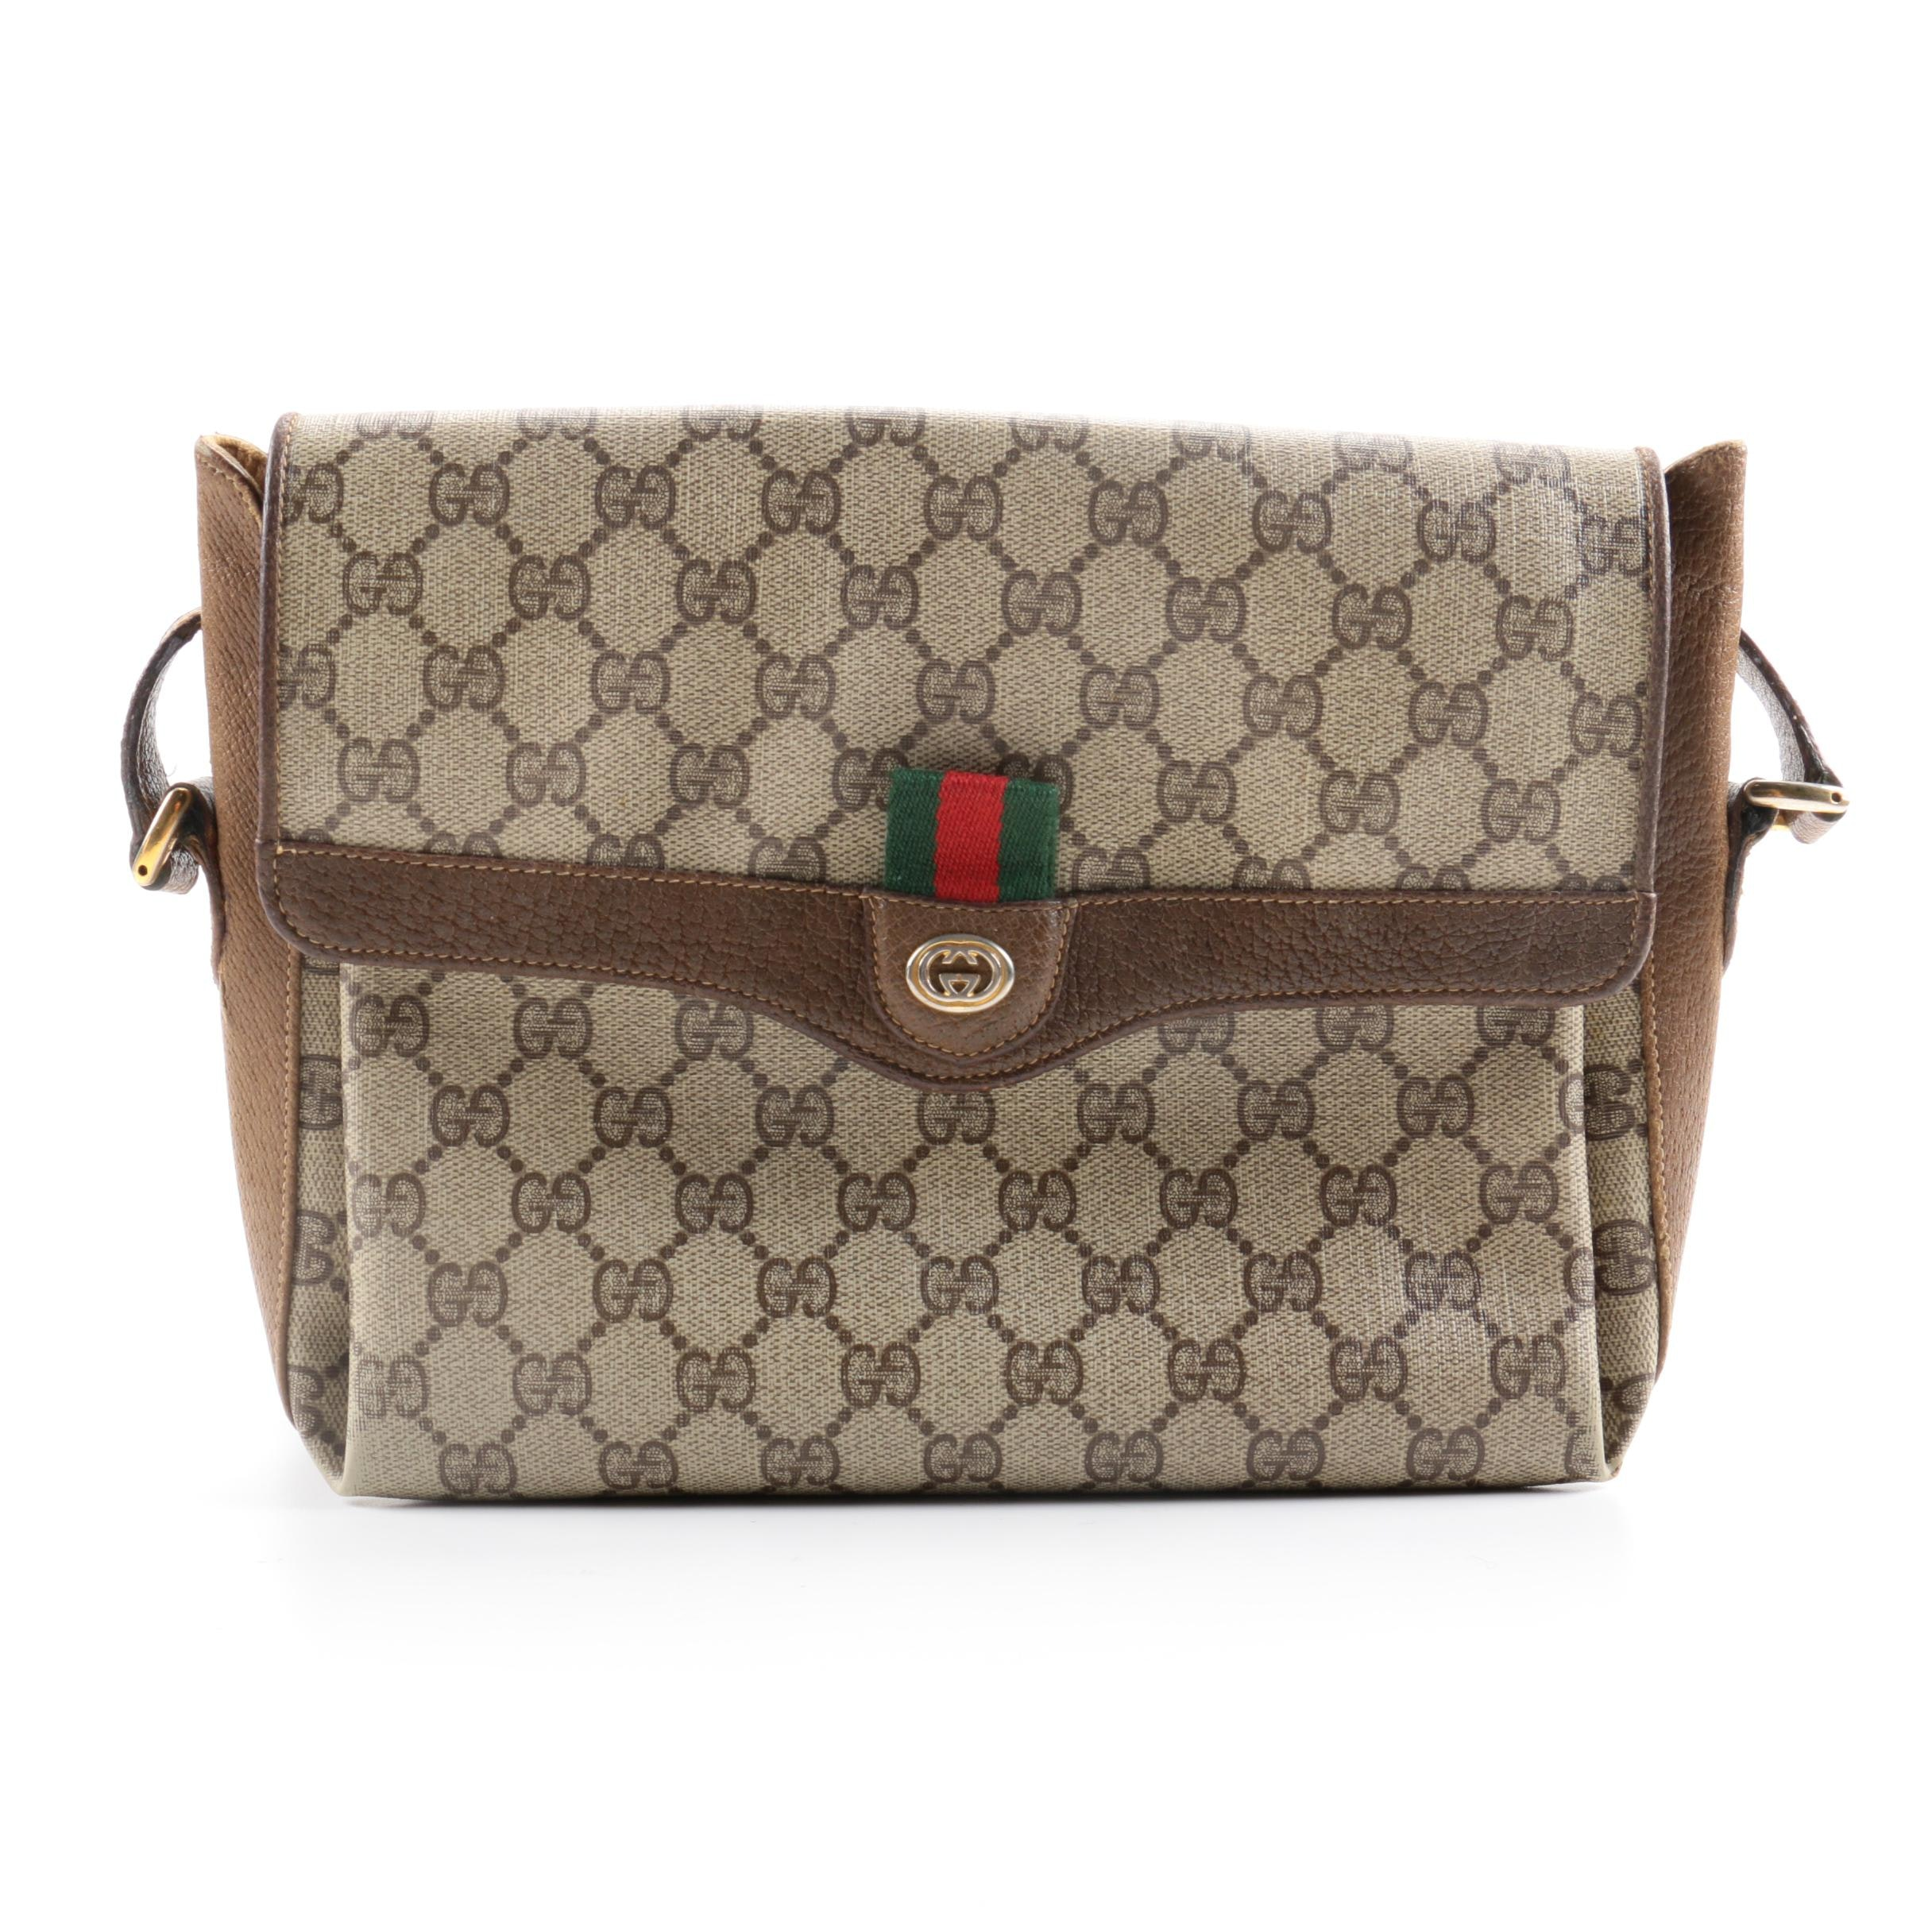 Vinage Gucci Accessory Collection Handbag